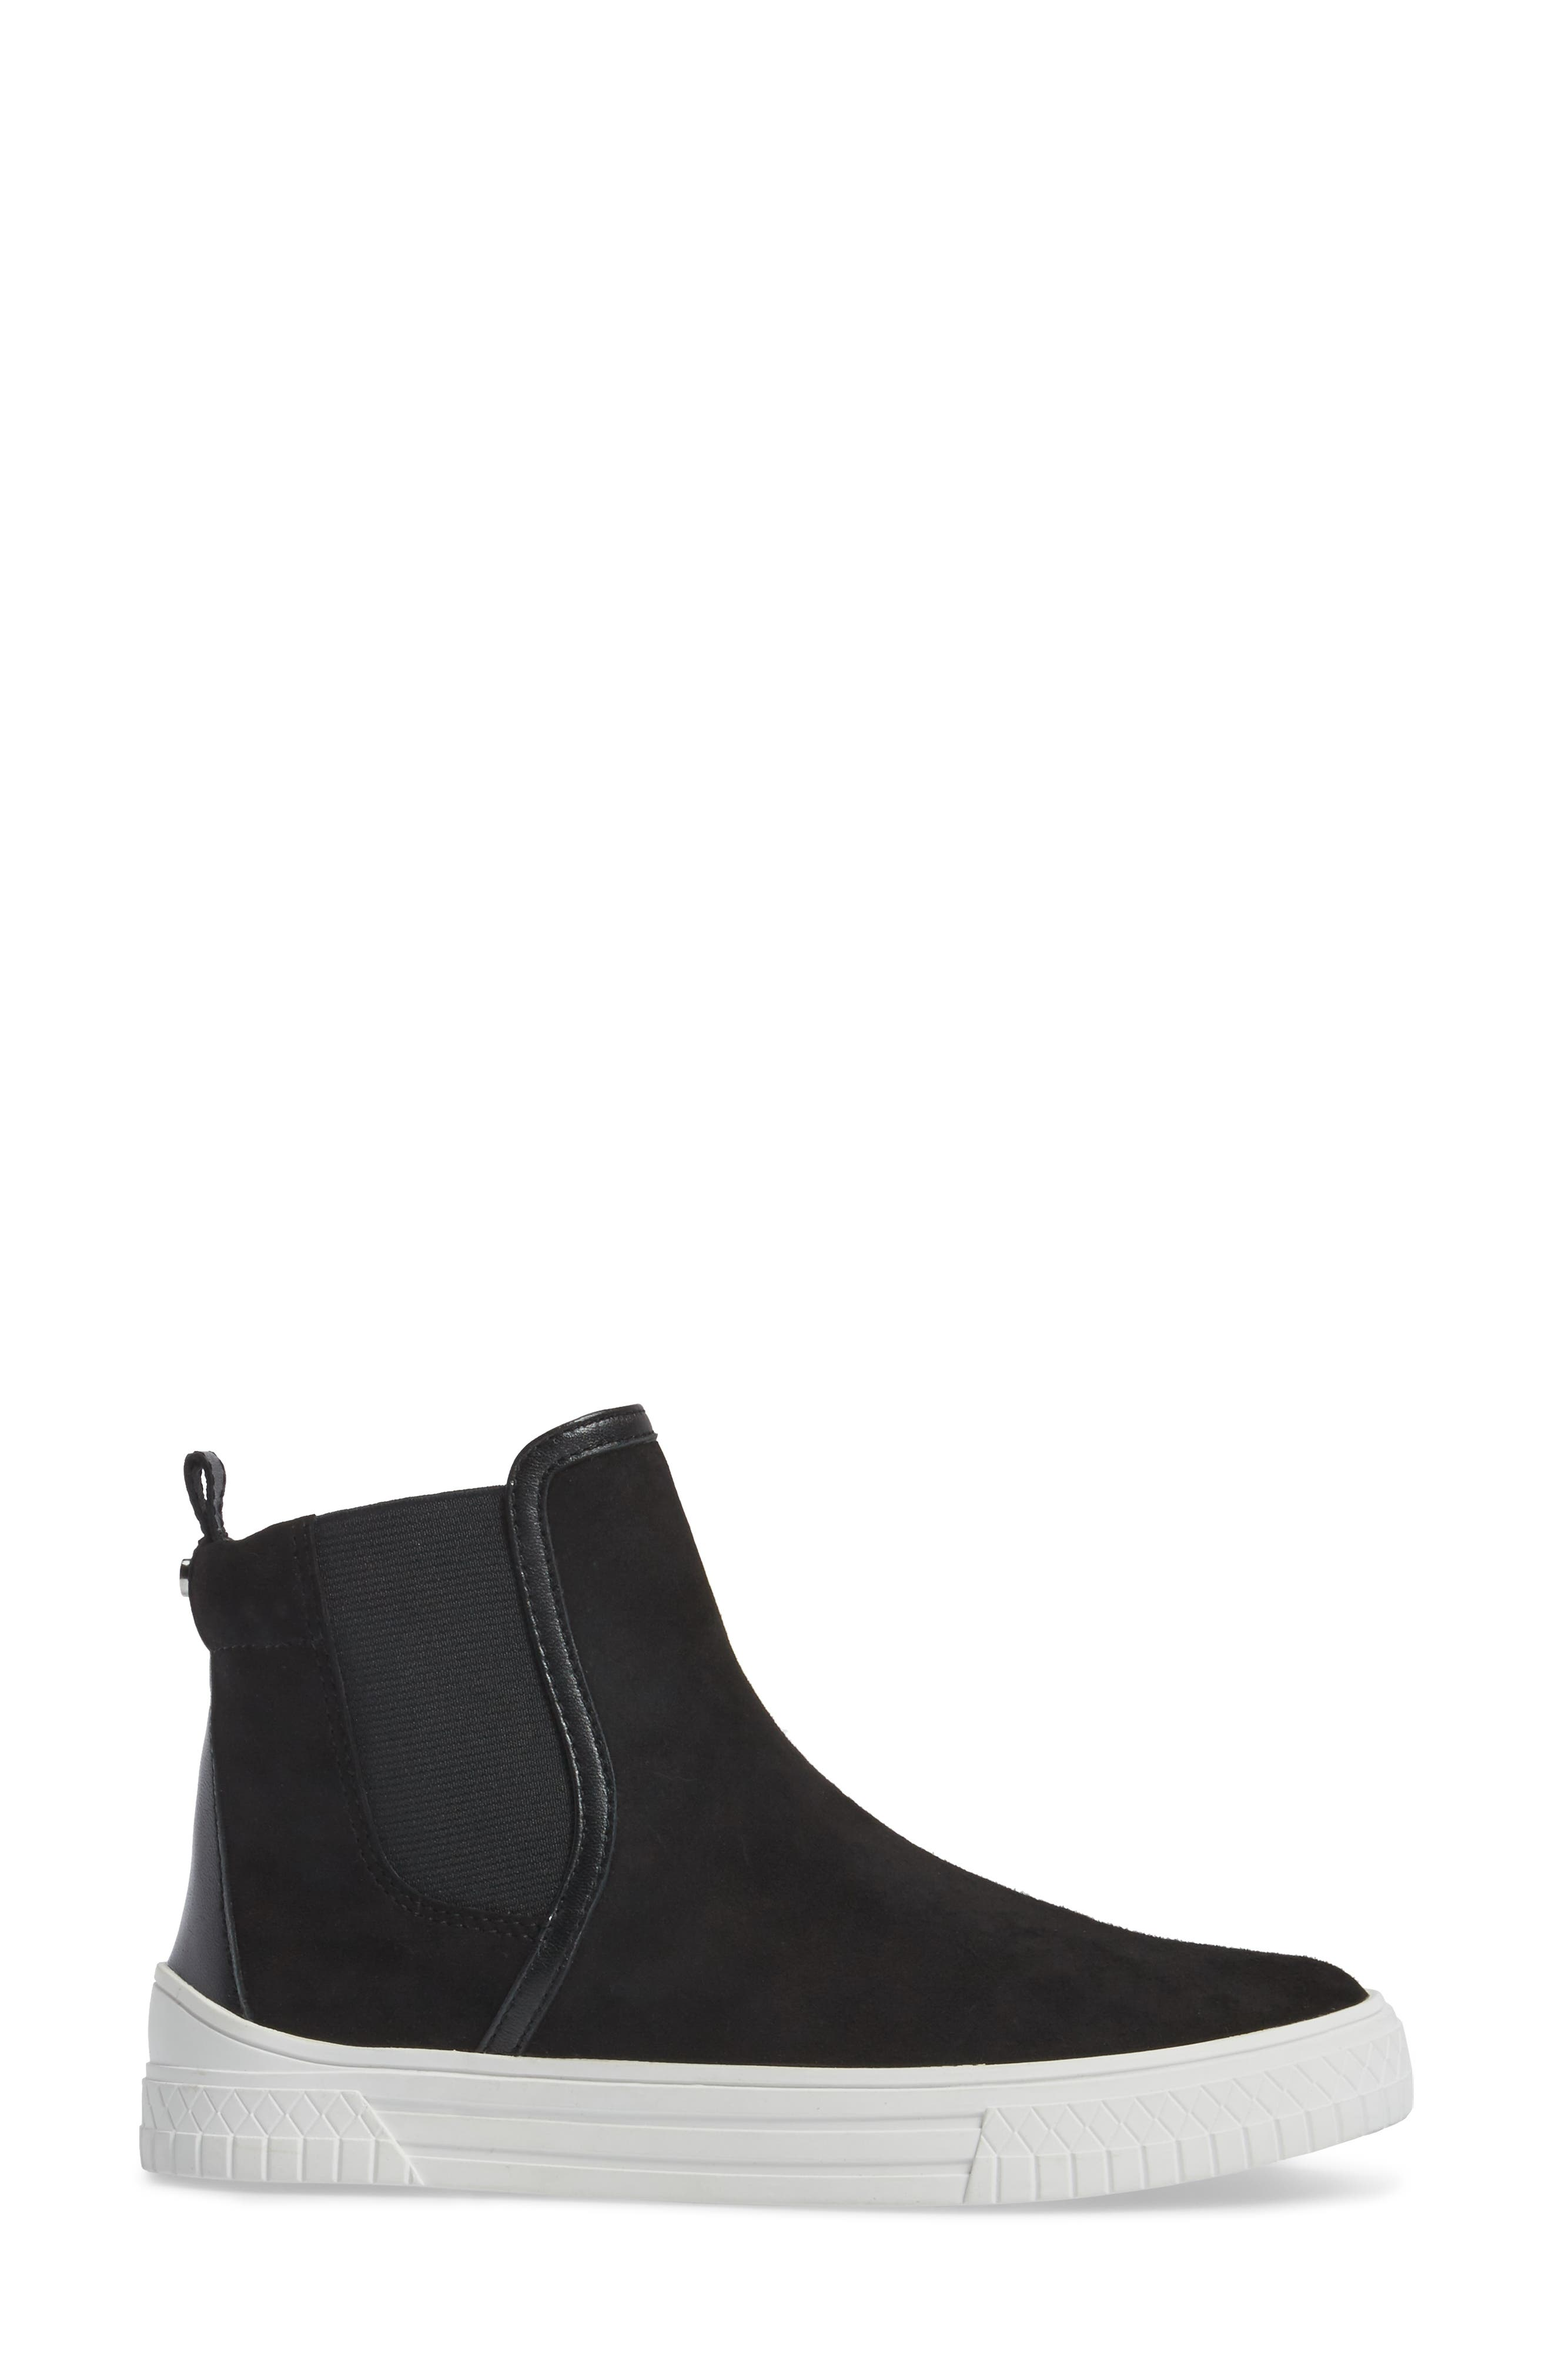 Gage Chelsea Boot,                             Alternate thumbnail 3, color,                             Black Suede